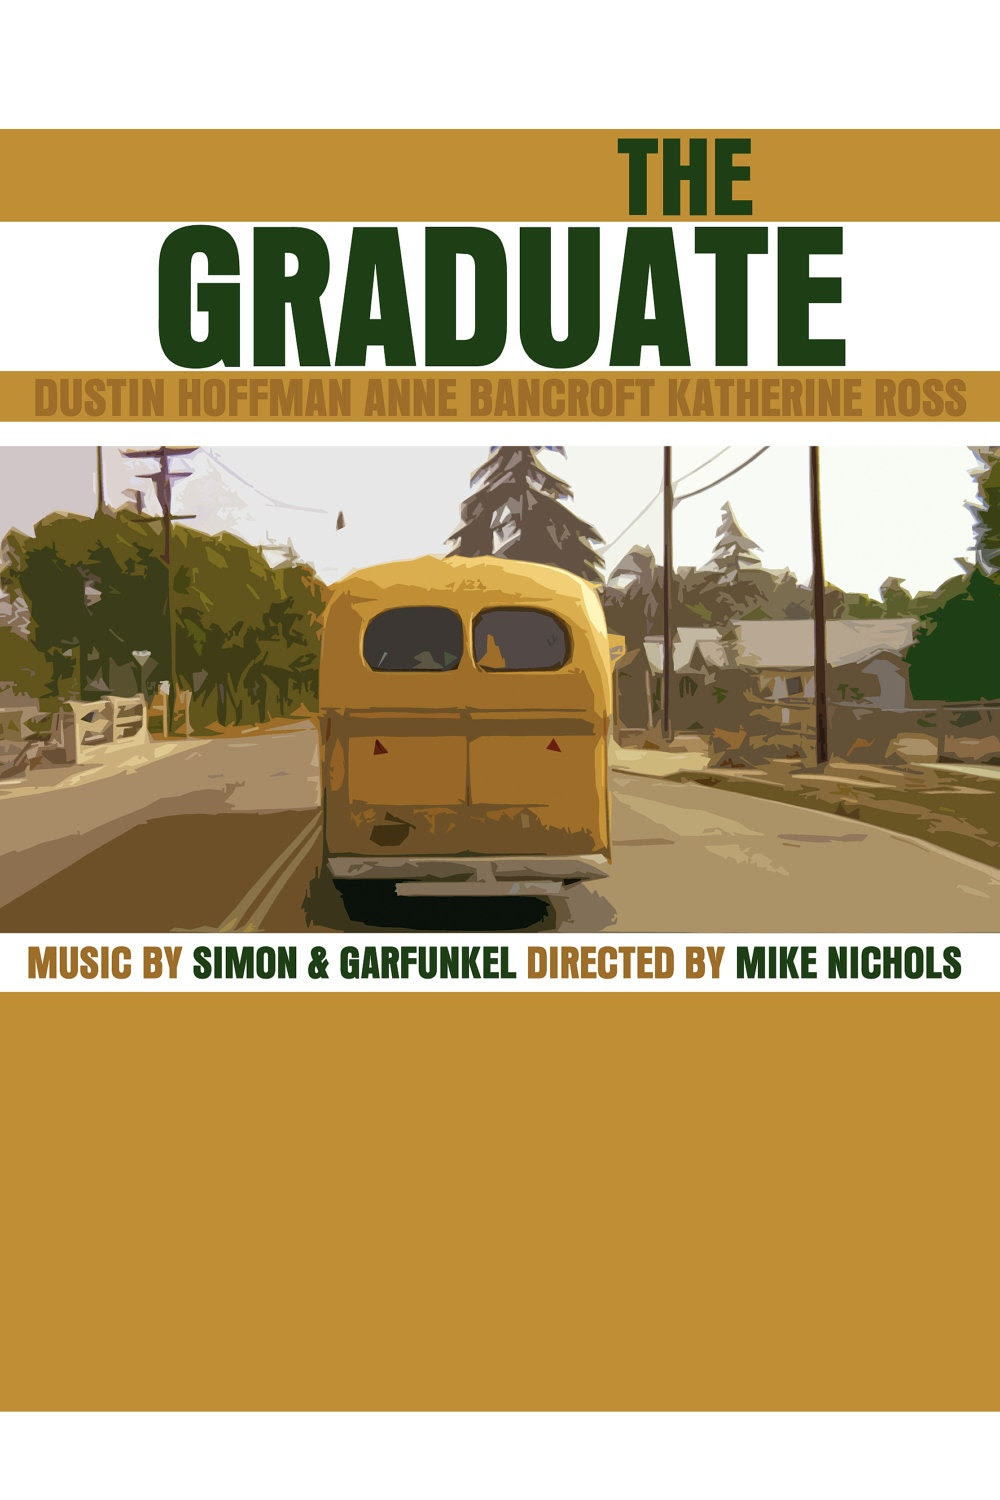 The Graduate Movie Poster (Paper or Plexiglas or Canvas)